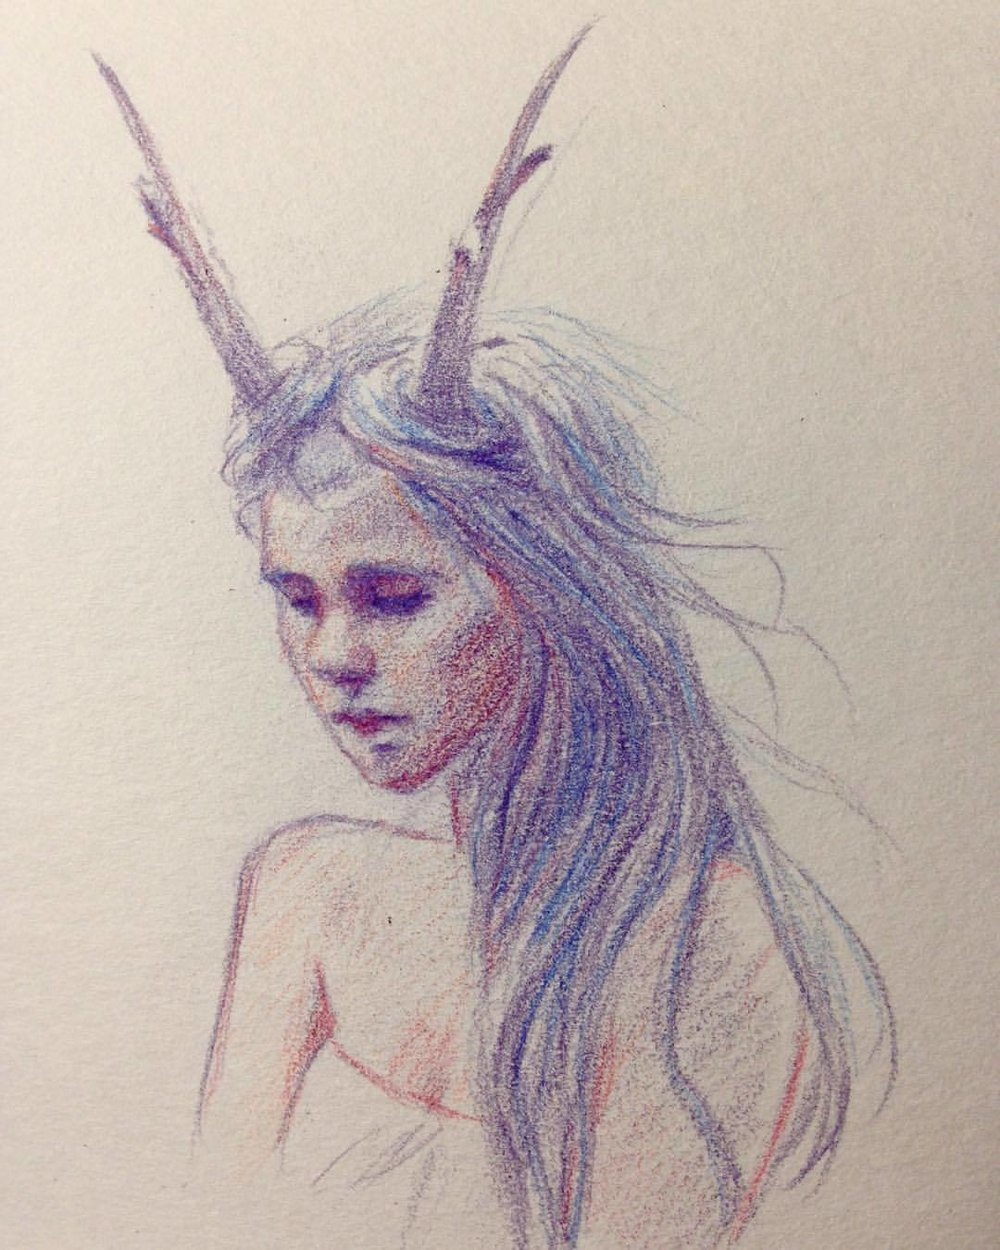 A little contemplation #study #horns  #girlwithhorns #girl #sad #contemplation #prismacolorpencils #portrait #2016 #belindaillustrates